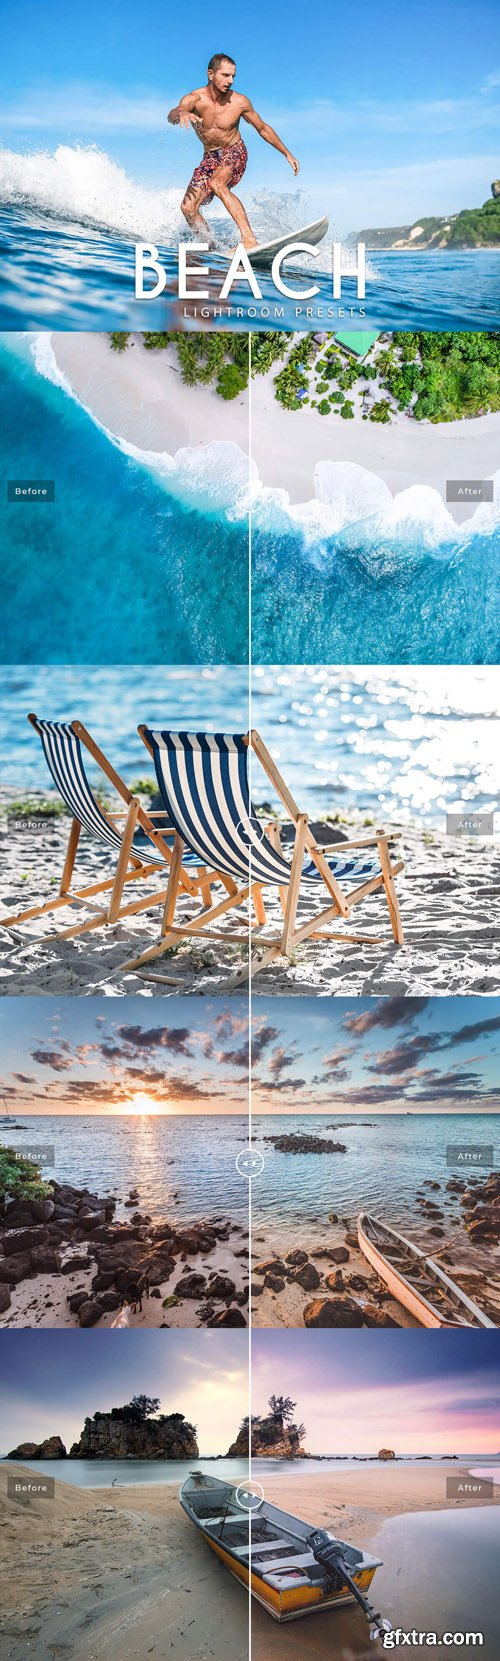 5 Beach Presets for Lightroom, Photoshop and CameraRaw [lrtemplate/ATN/XMP]